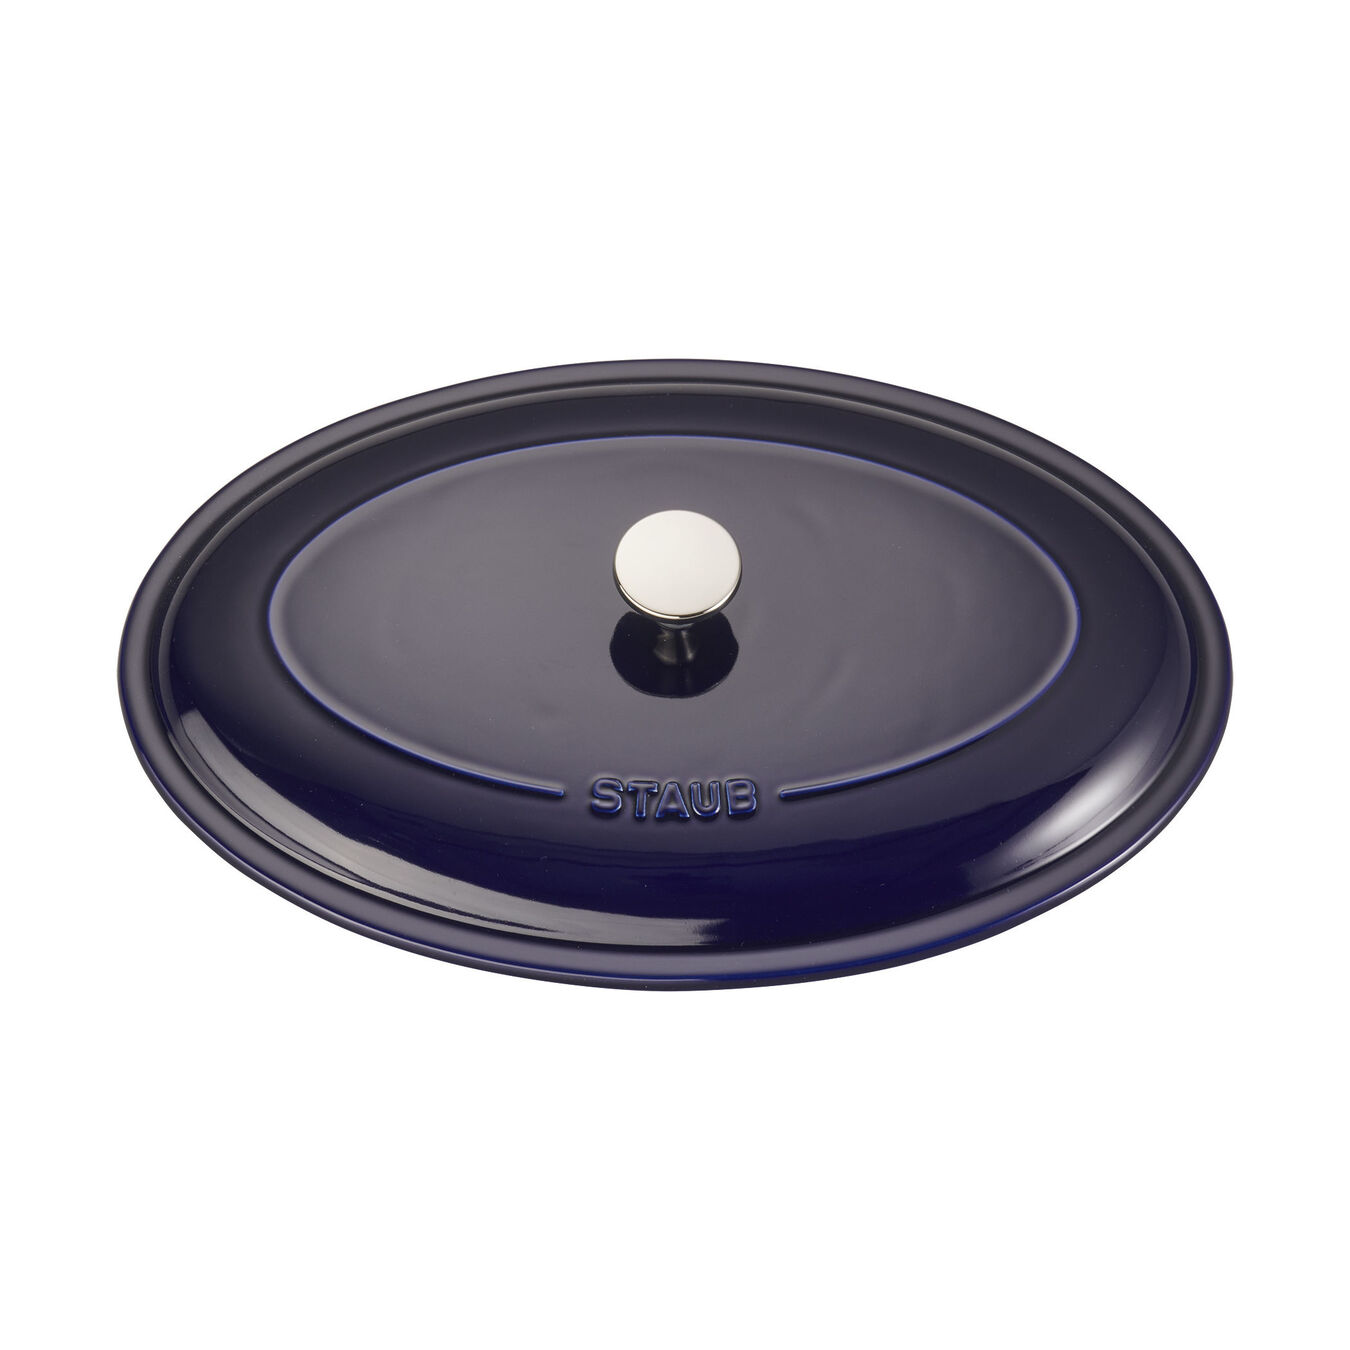 14-inch Oval Covered Baking Dish - Dark Blue,,large 4